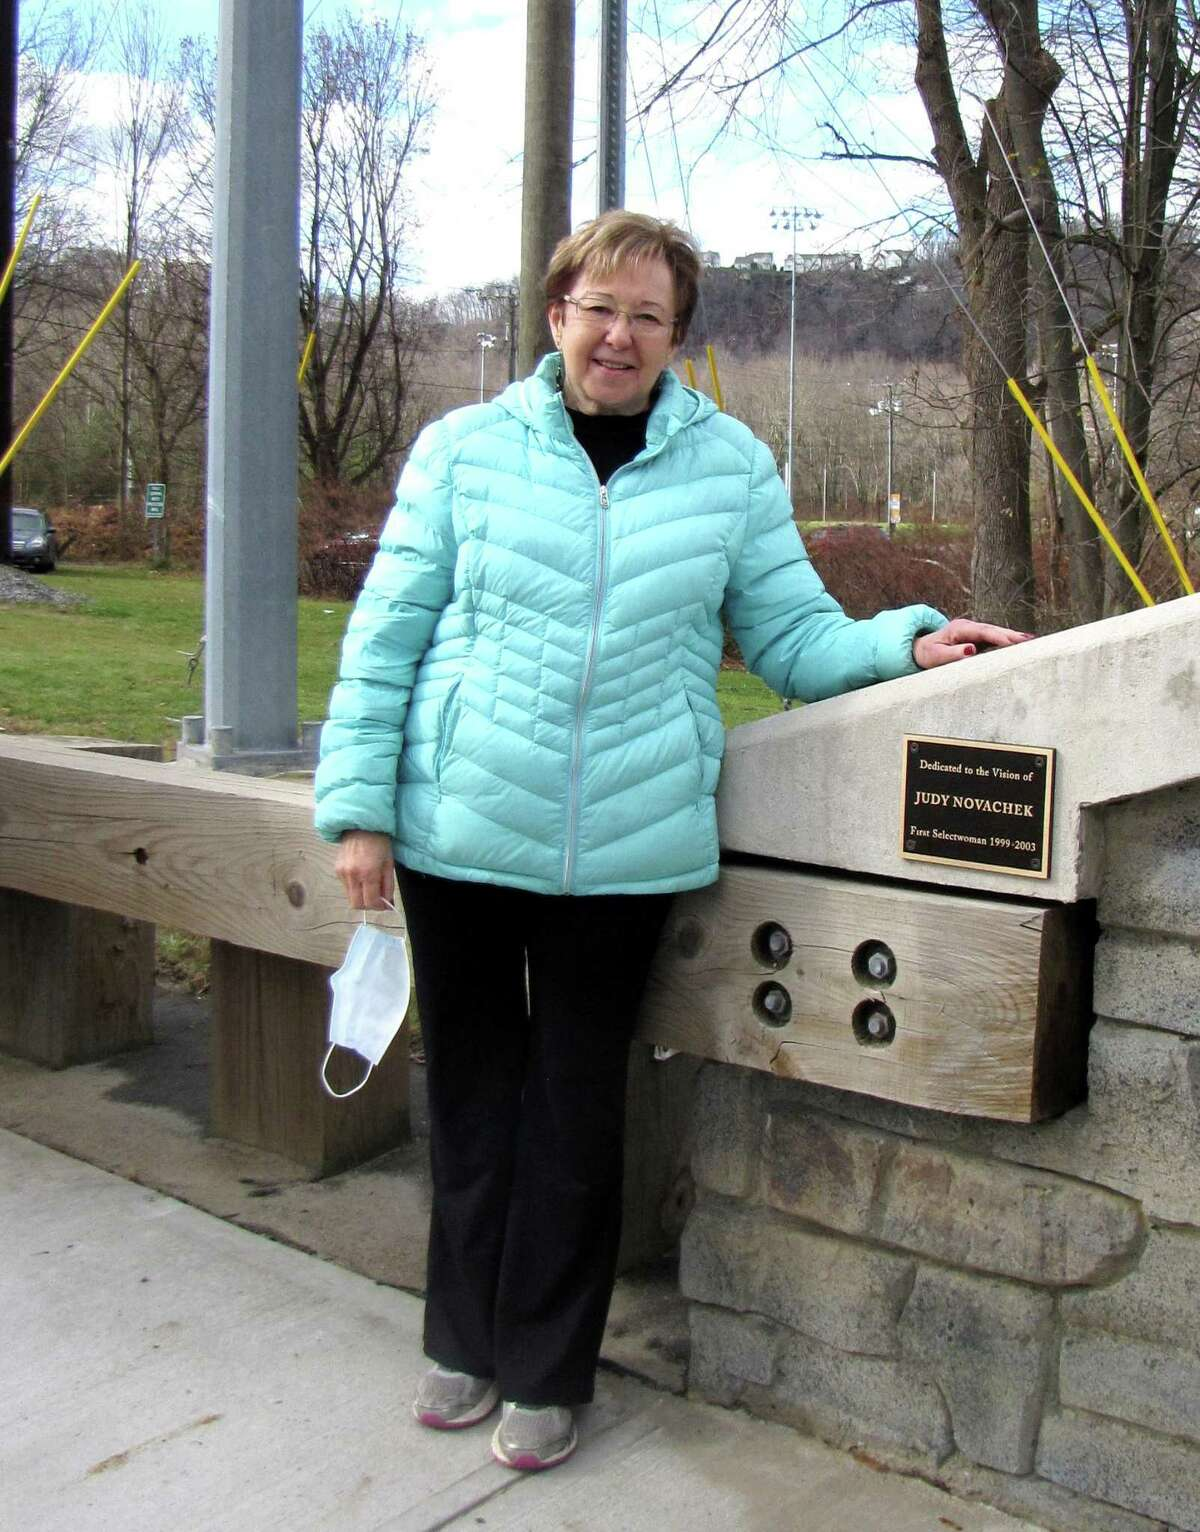 First Selectwoman Judy Novachek was recognized for her efforts to improve an intersection near the schools.